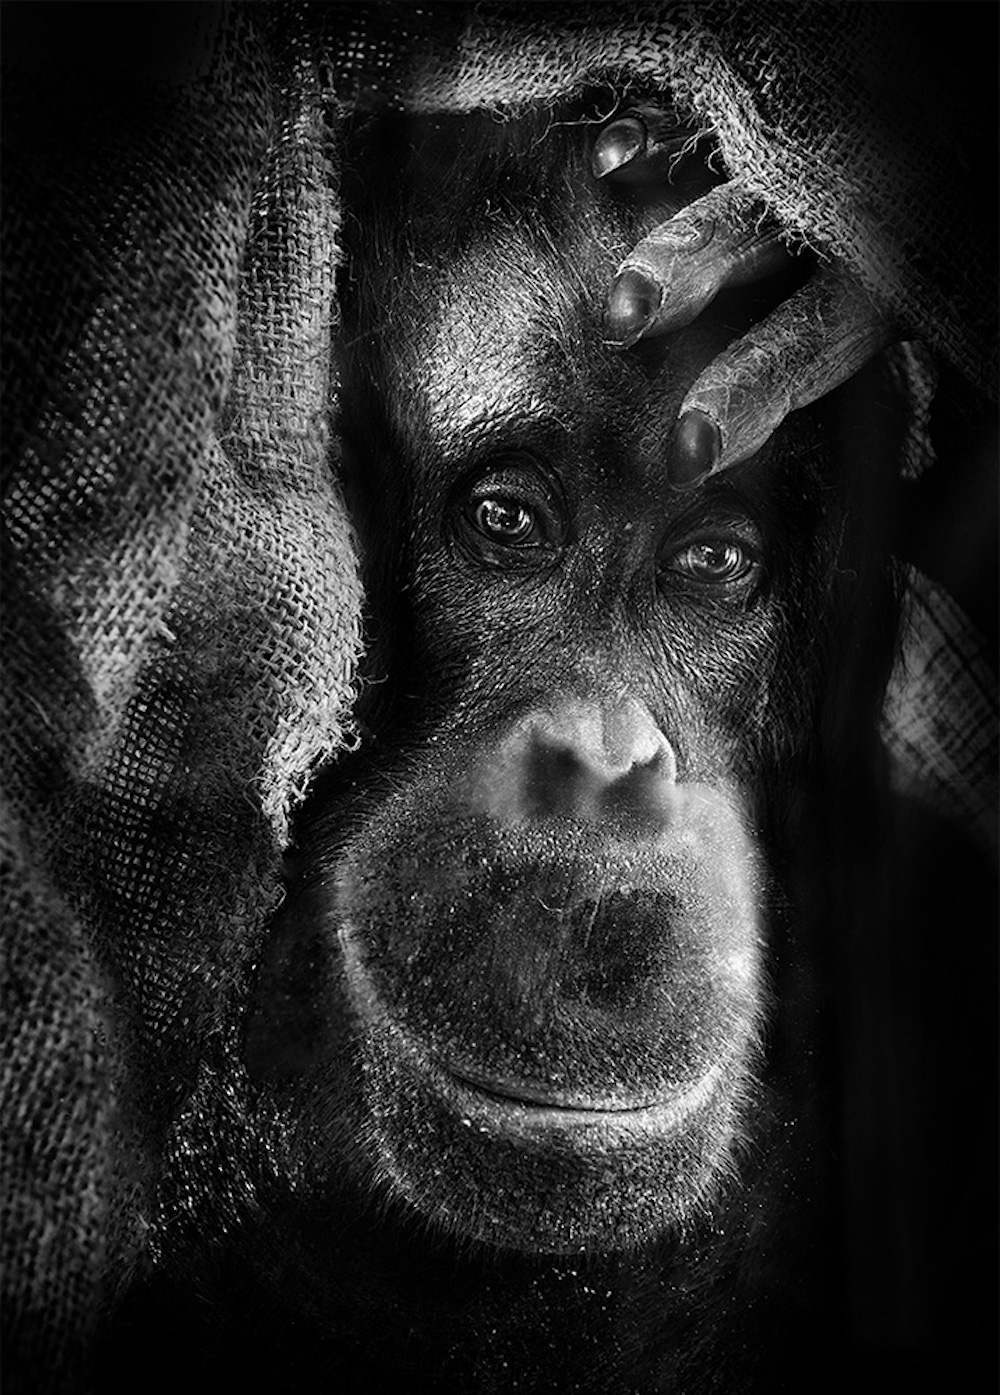 Inhuman Unnerving Portraits Of Emotional Apes 2014